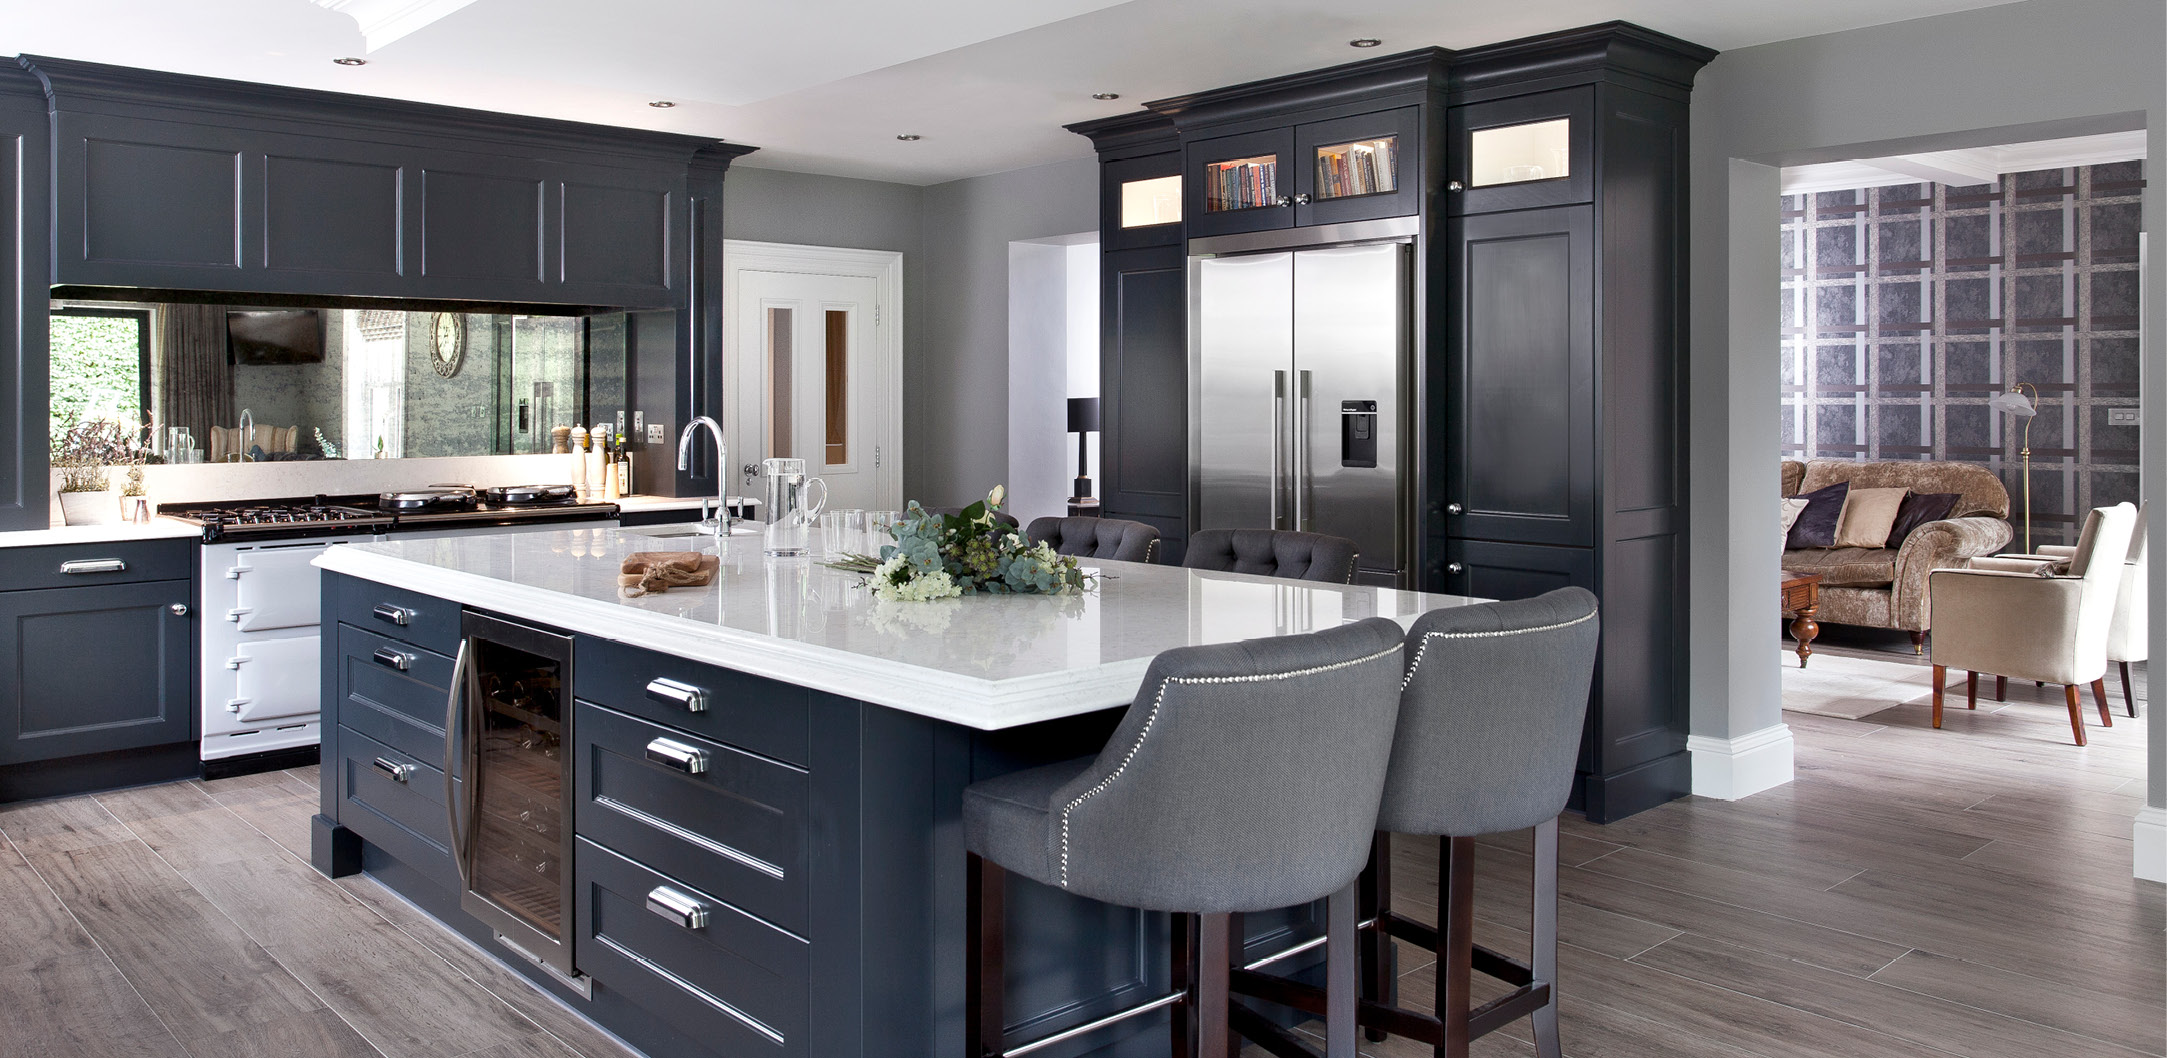 Painted kitchen cabinets modern New contemporary kitchen design